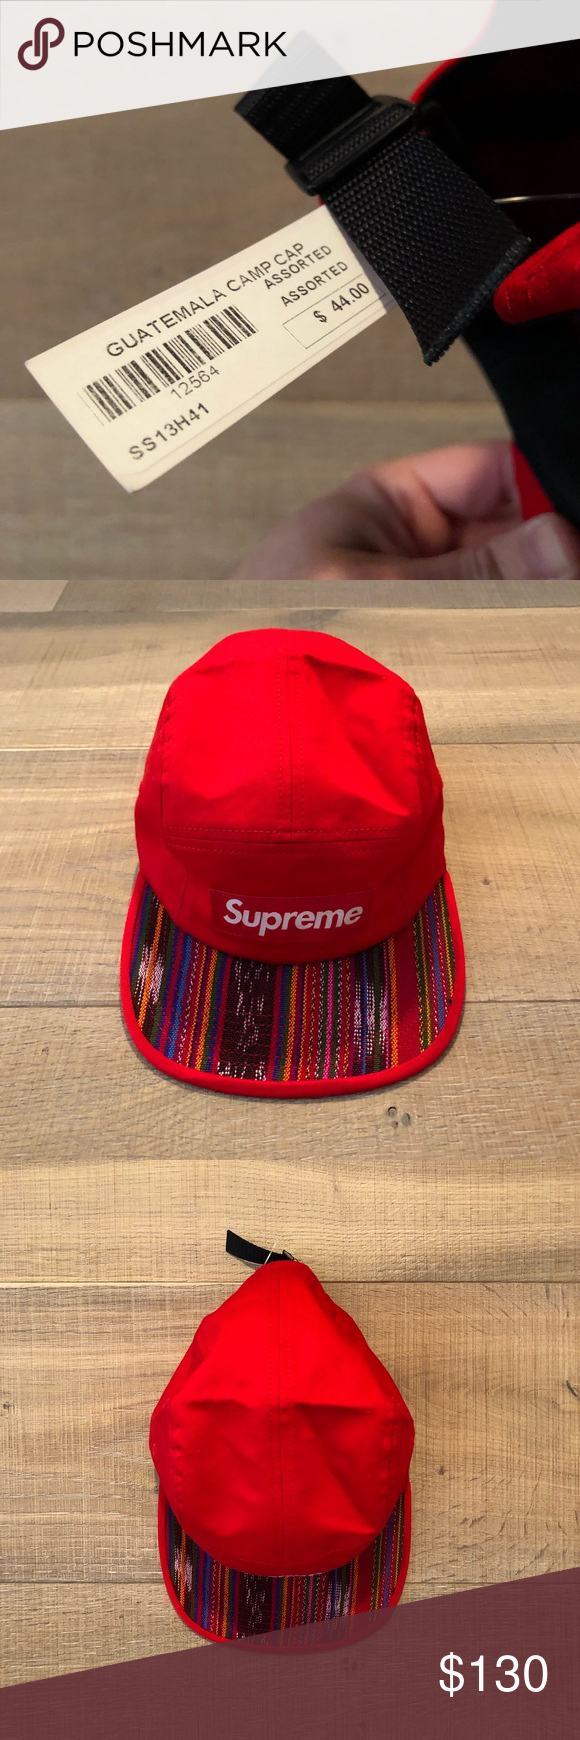 d5d2e5d41bd Supreme Guatemala Camp Cap Supreme Guatemala Camp Cap Throwing it back to  SS13 with this one